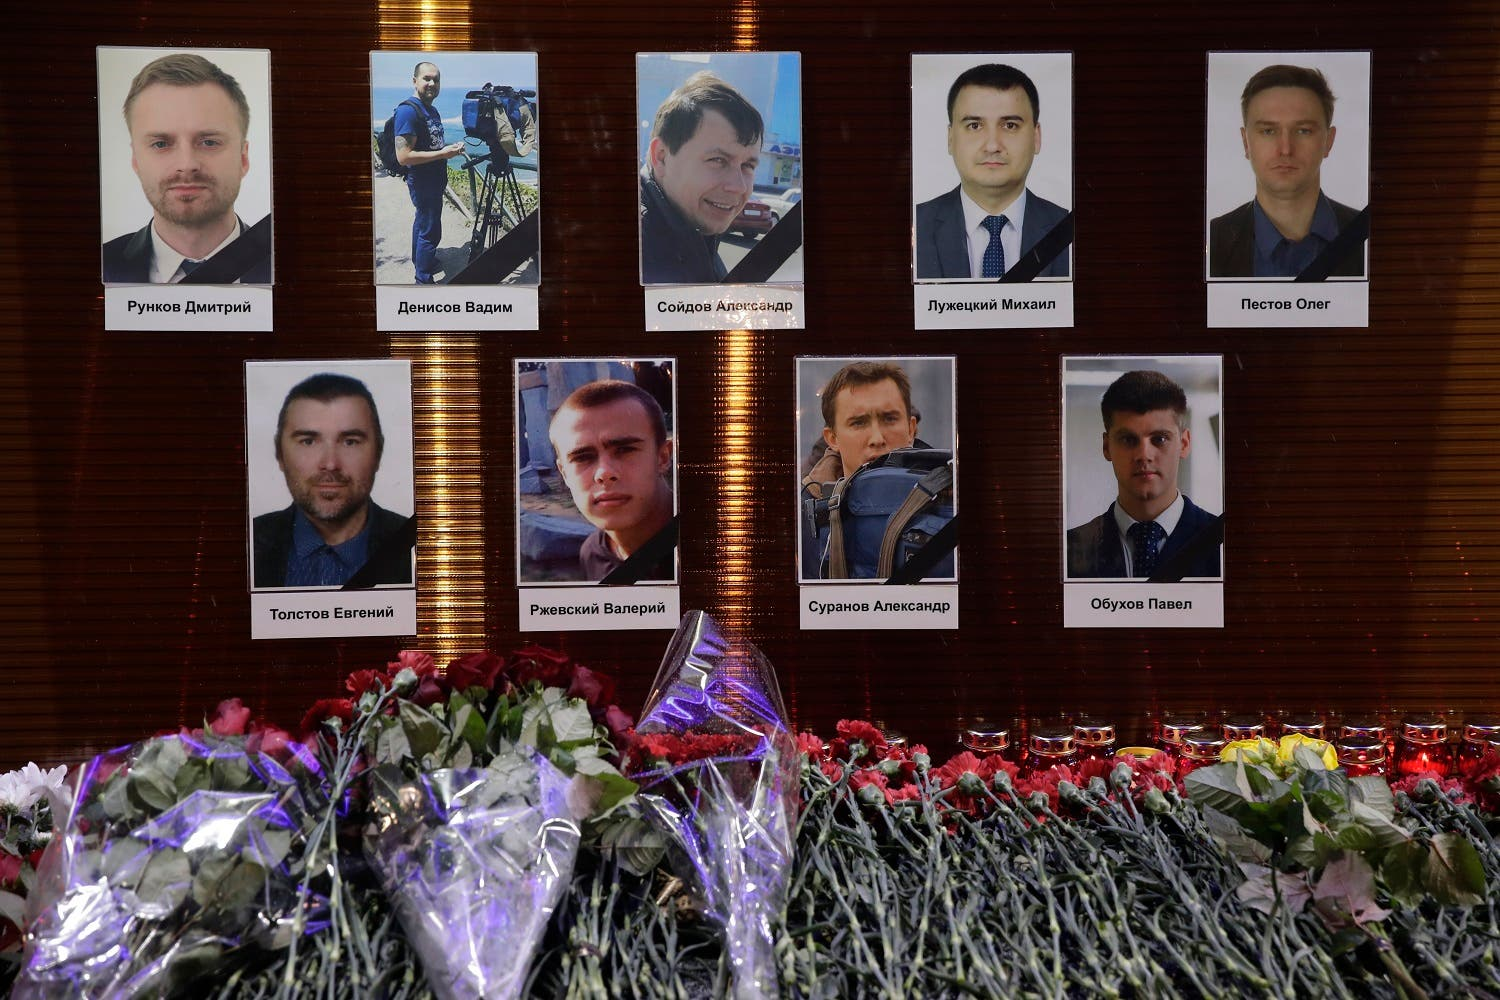 Flower tributes in front of portraits of Russian TV journalists who were aboard the crashes military plane. (AP)